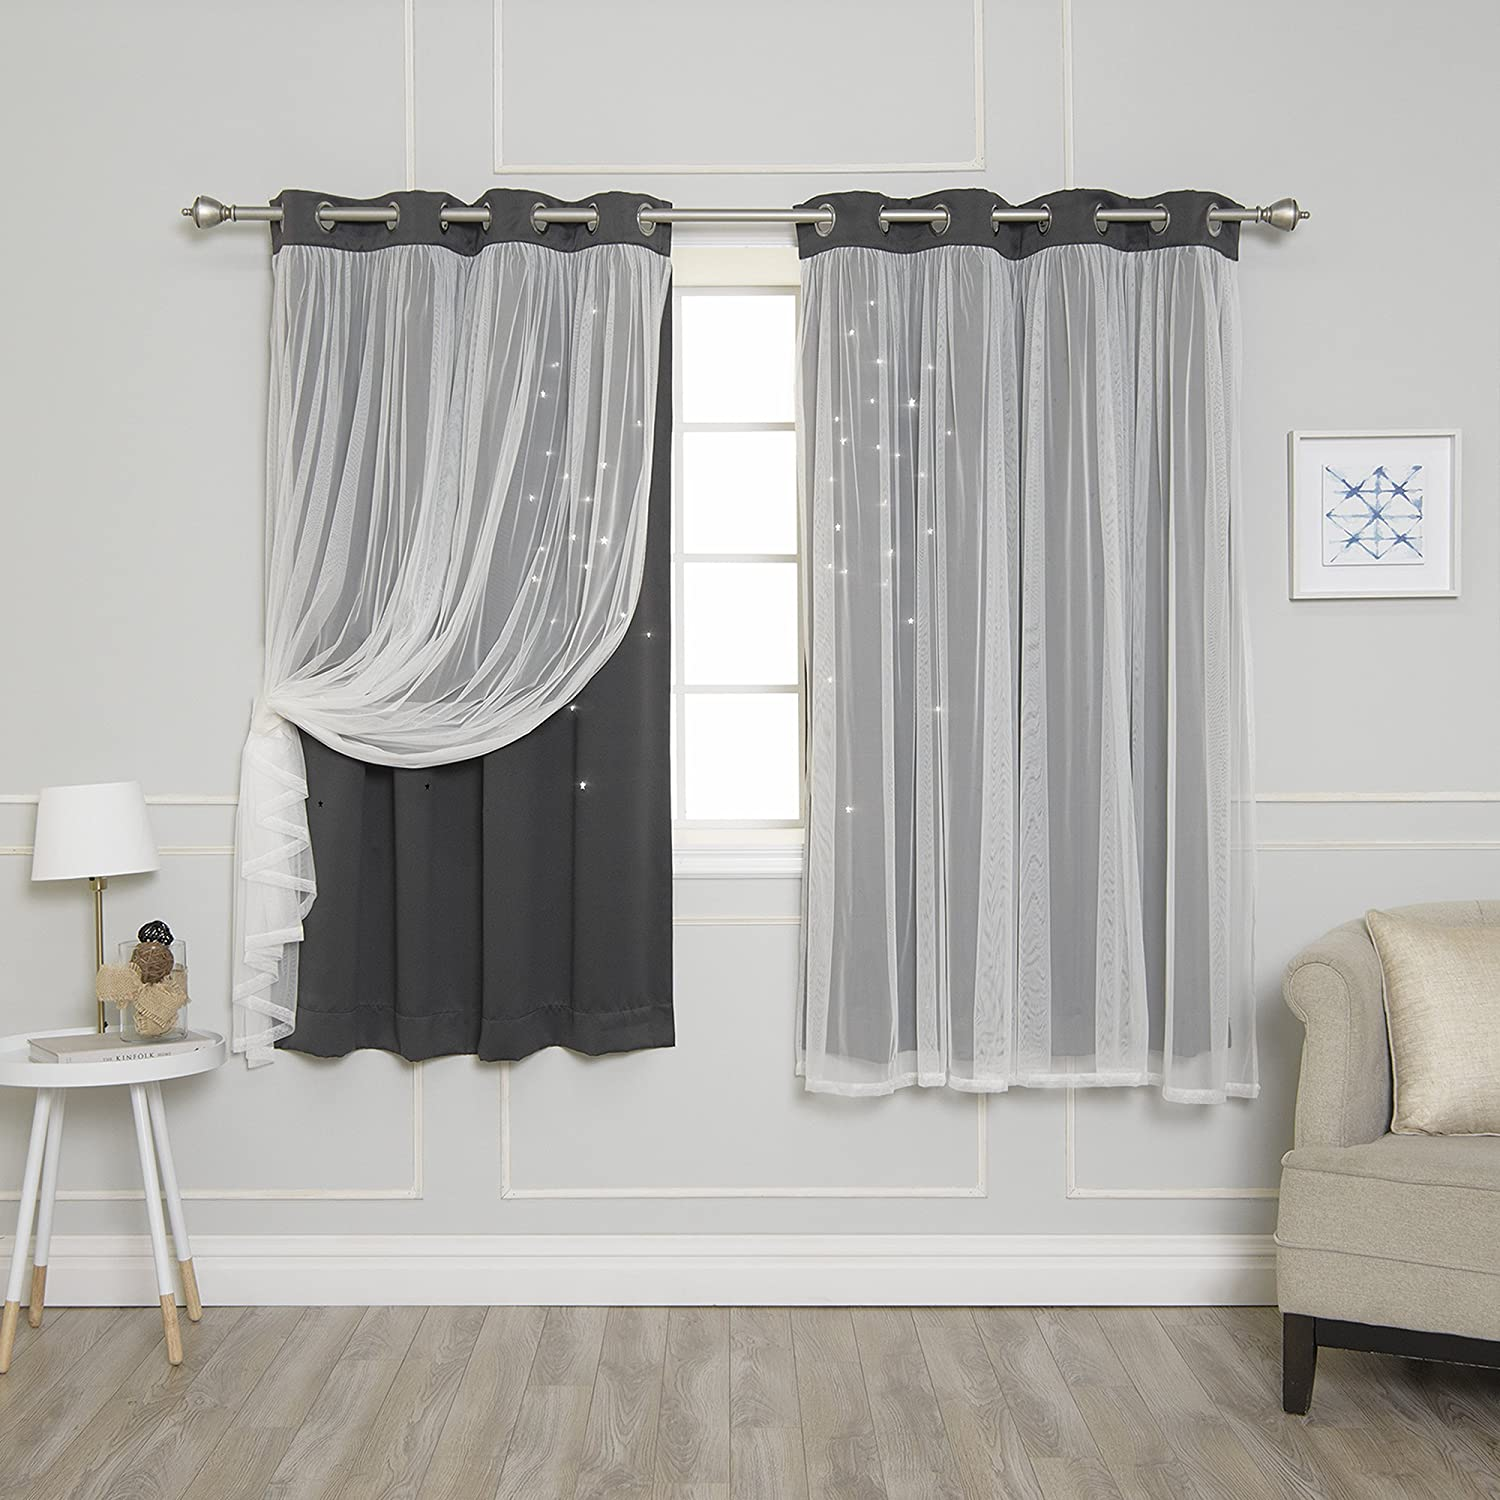 """Best Home Fashion Tulle Overlay Star Cut Out Blackout Curtains - Stainless Steel Grommet Top - Dark Grey - 52"""" W x 63"""" L (Set of 2 Panels)"""